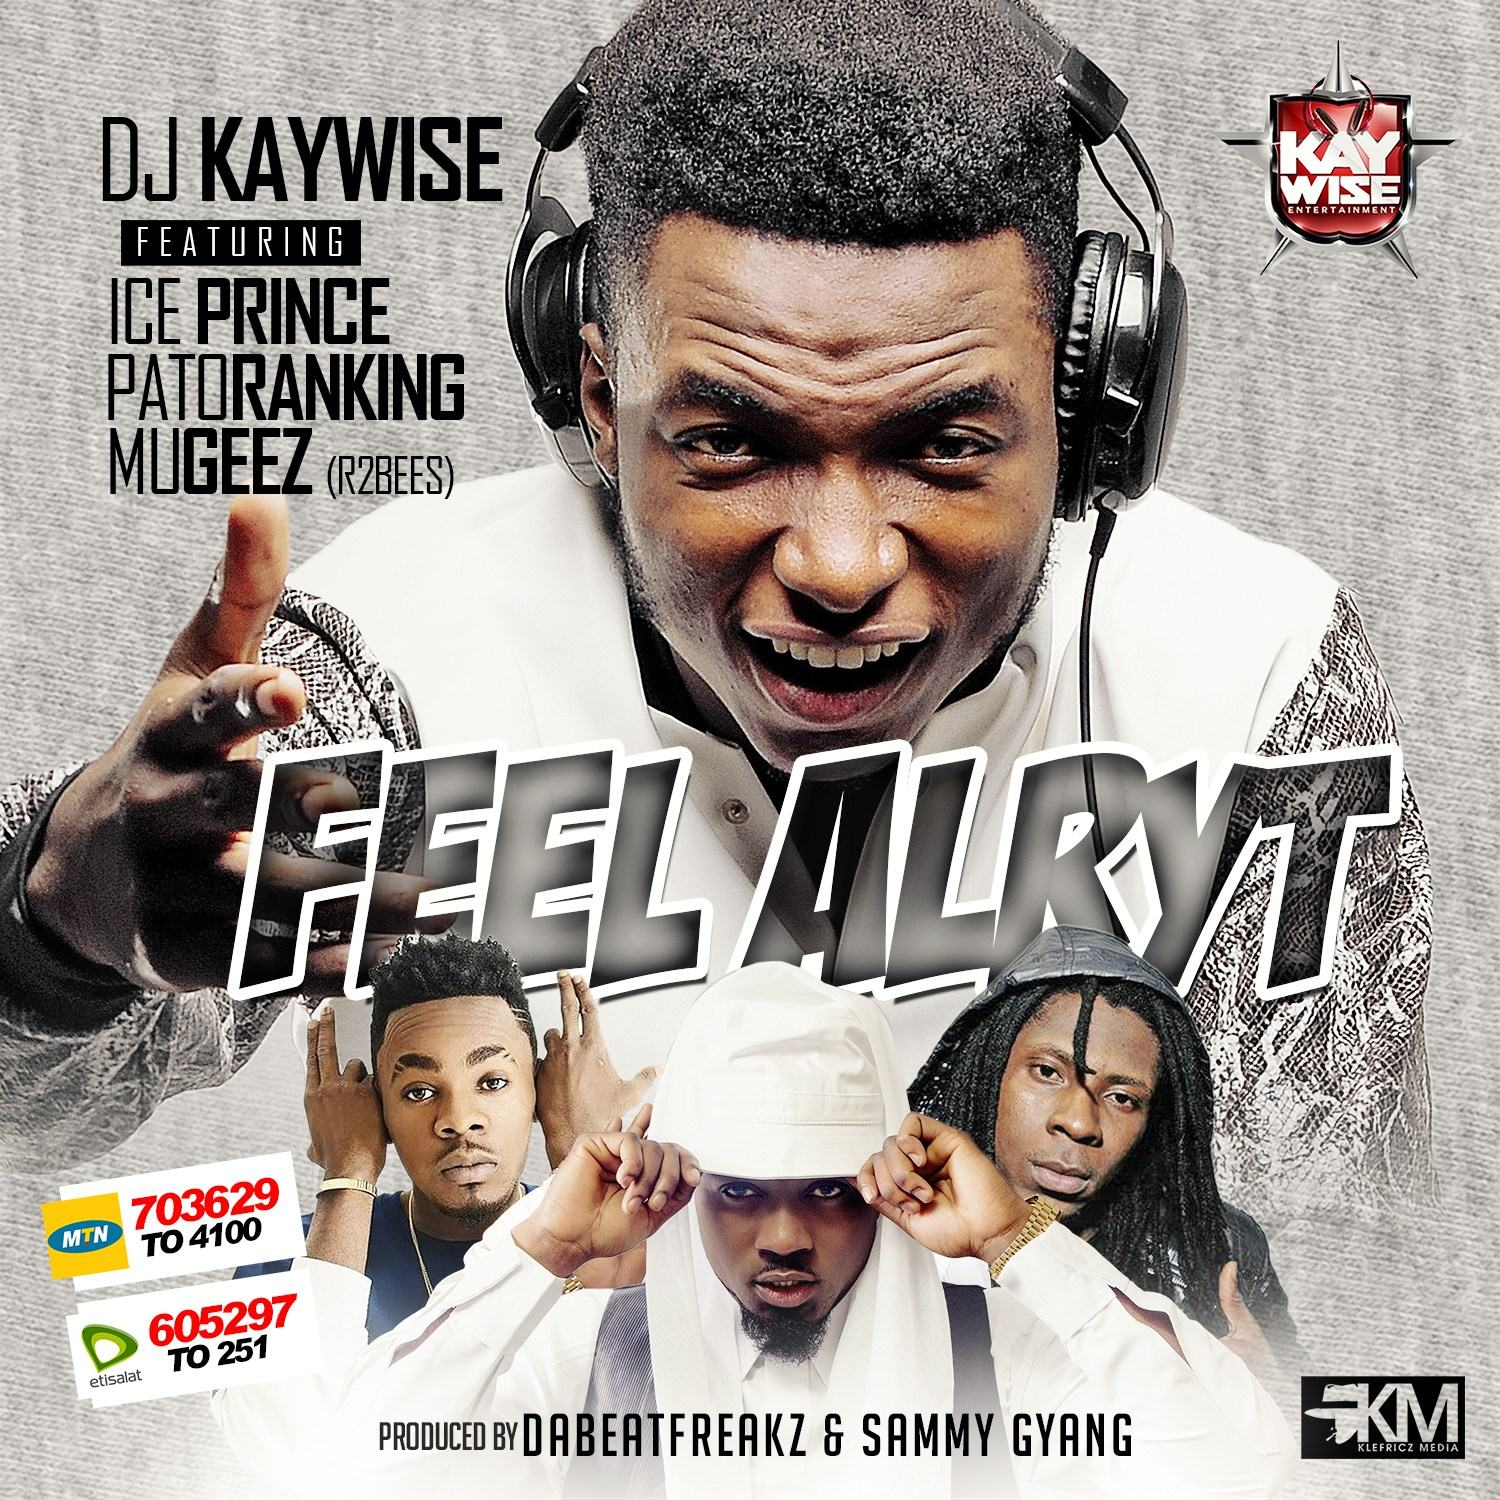 DJ Kaywise - Feel Alright ft Ice Prince, Mugeez & Patoranking [ViDeo]